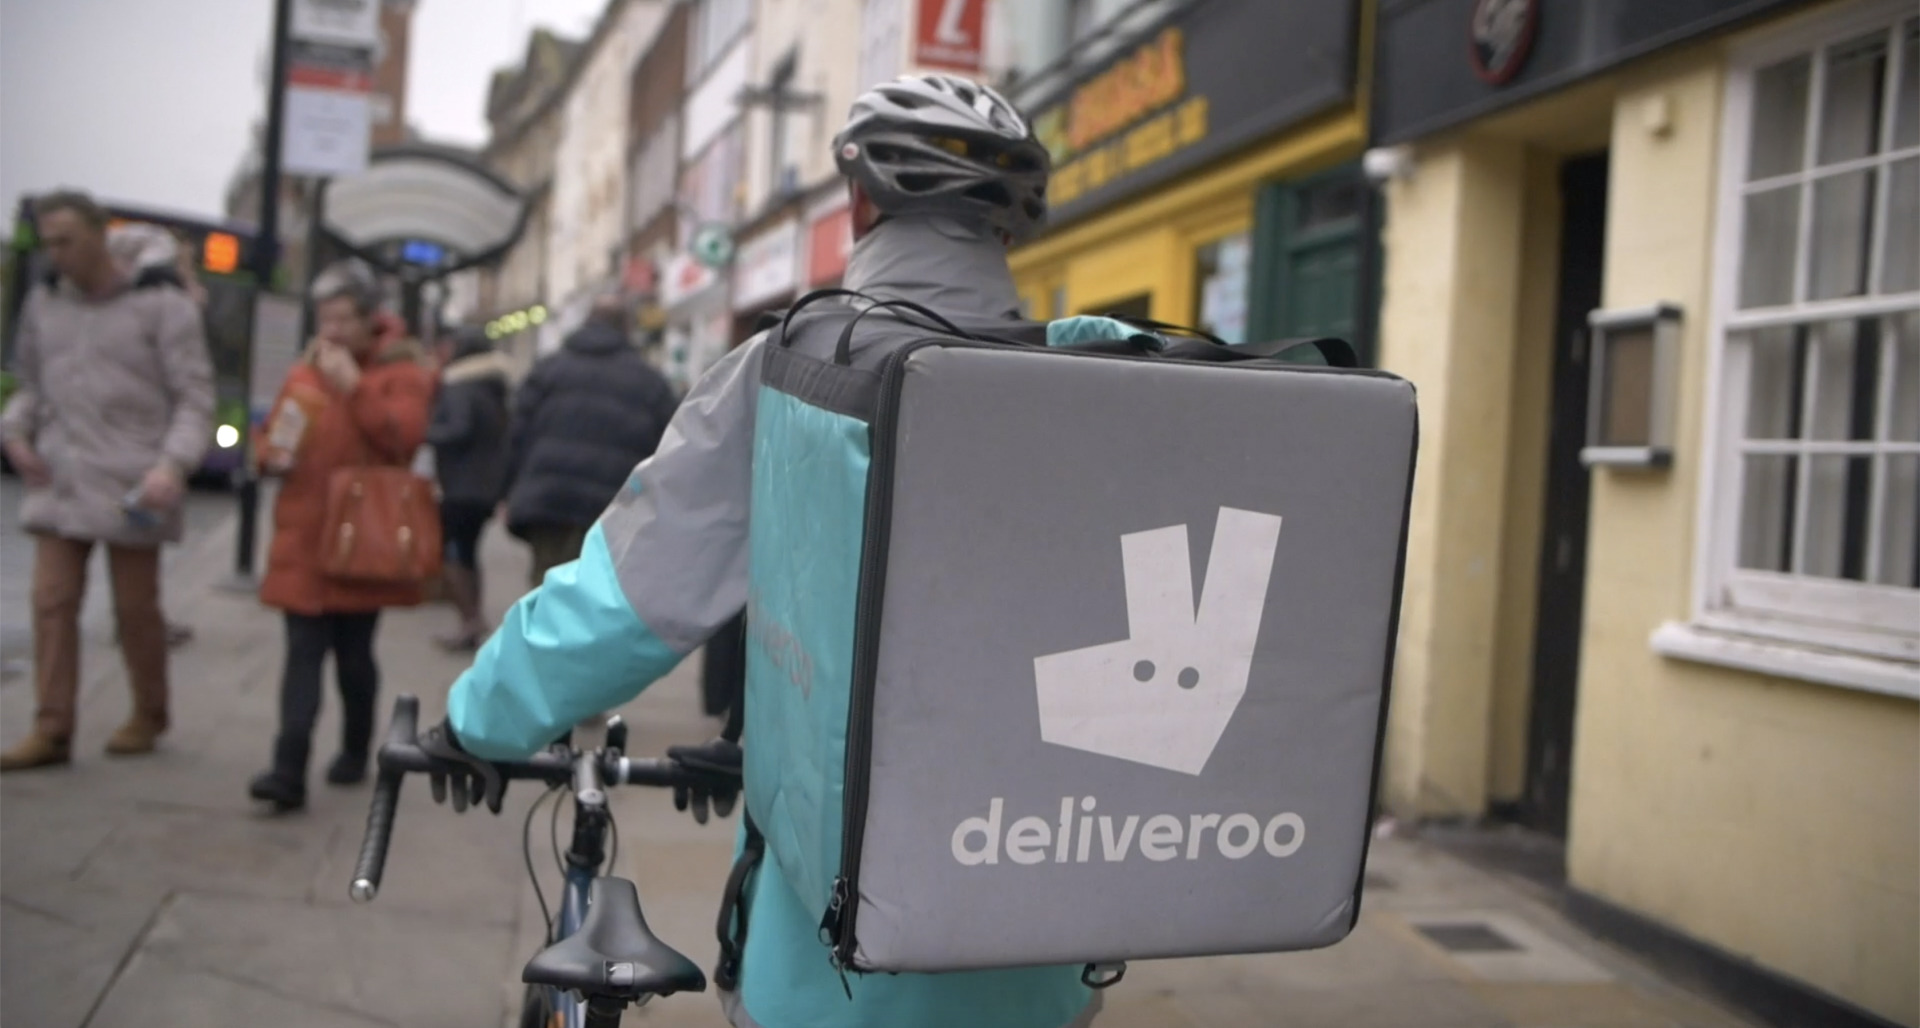 A Deliveroo cyclist on sidewalk with food delivery backpack.